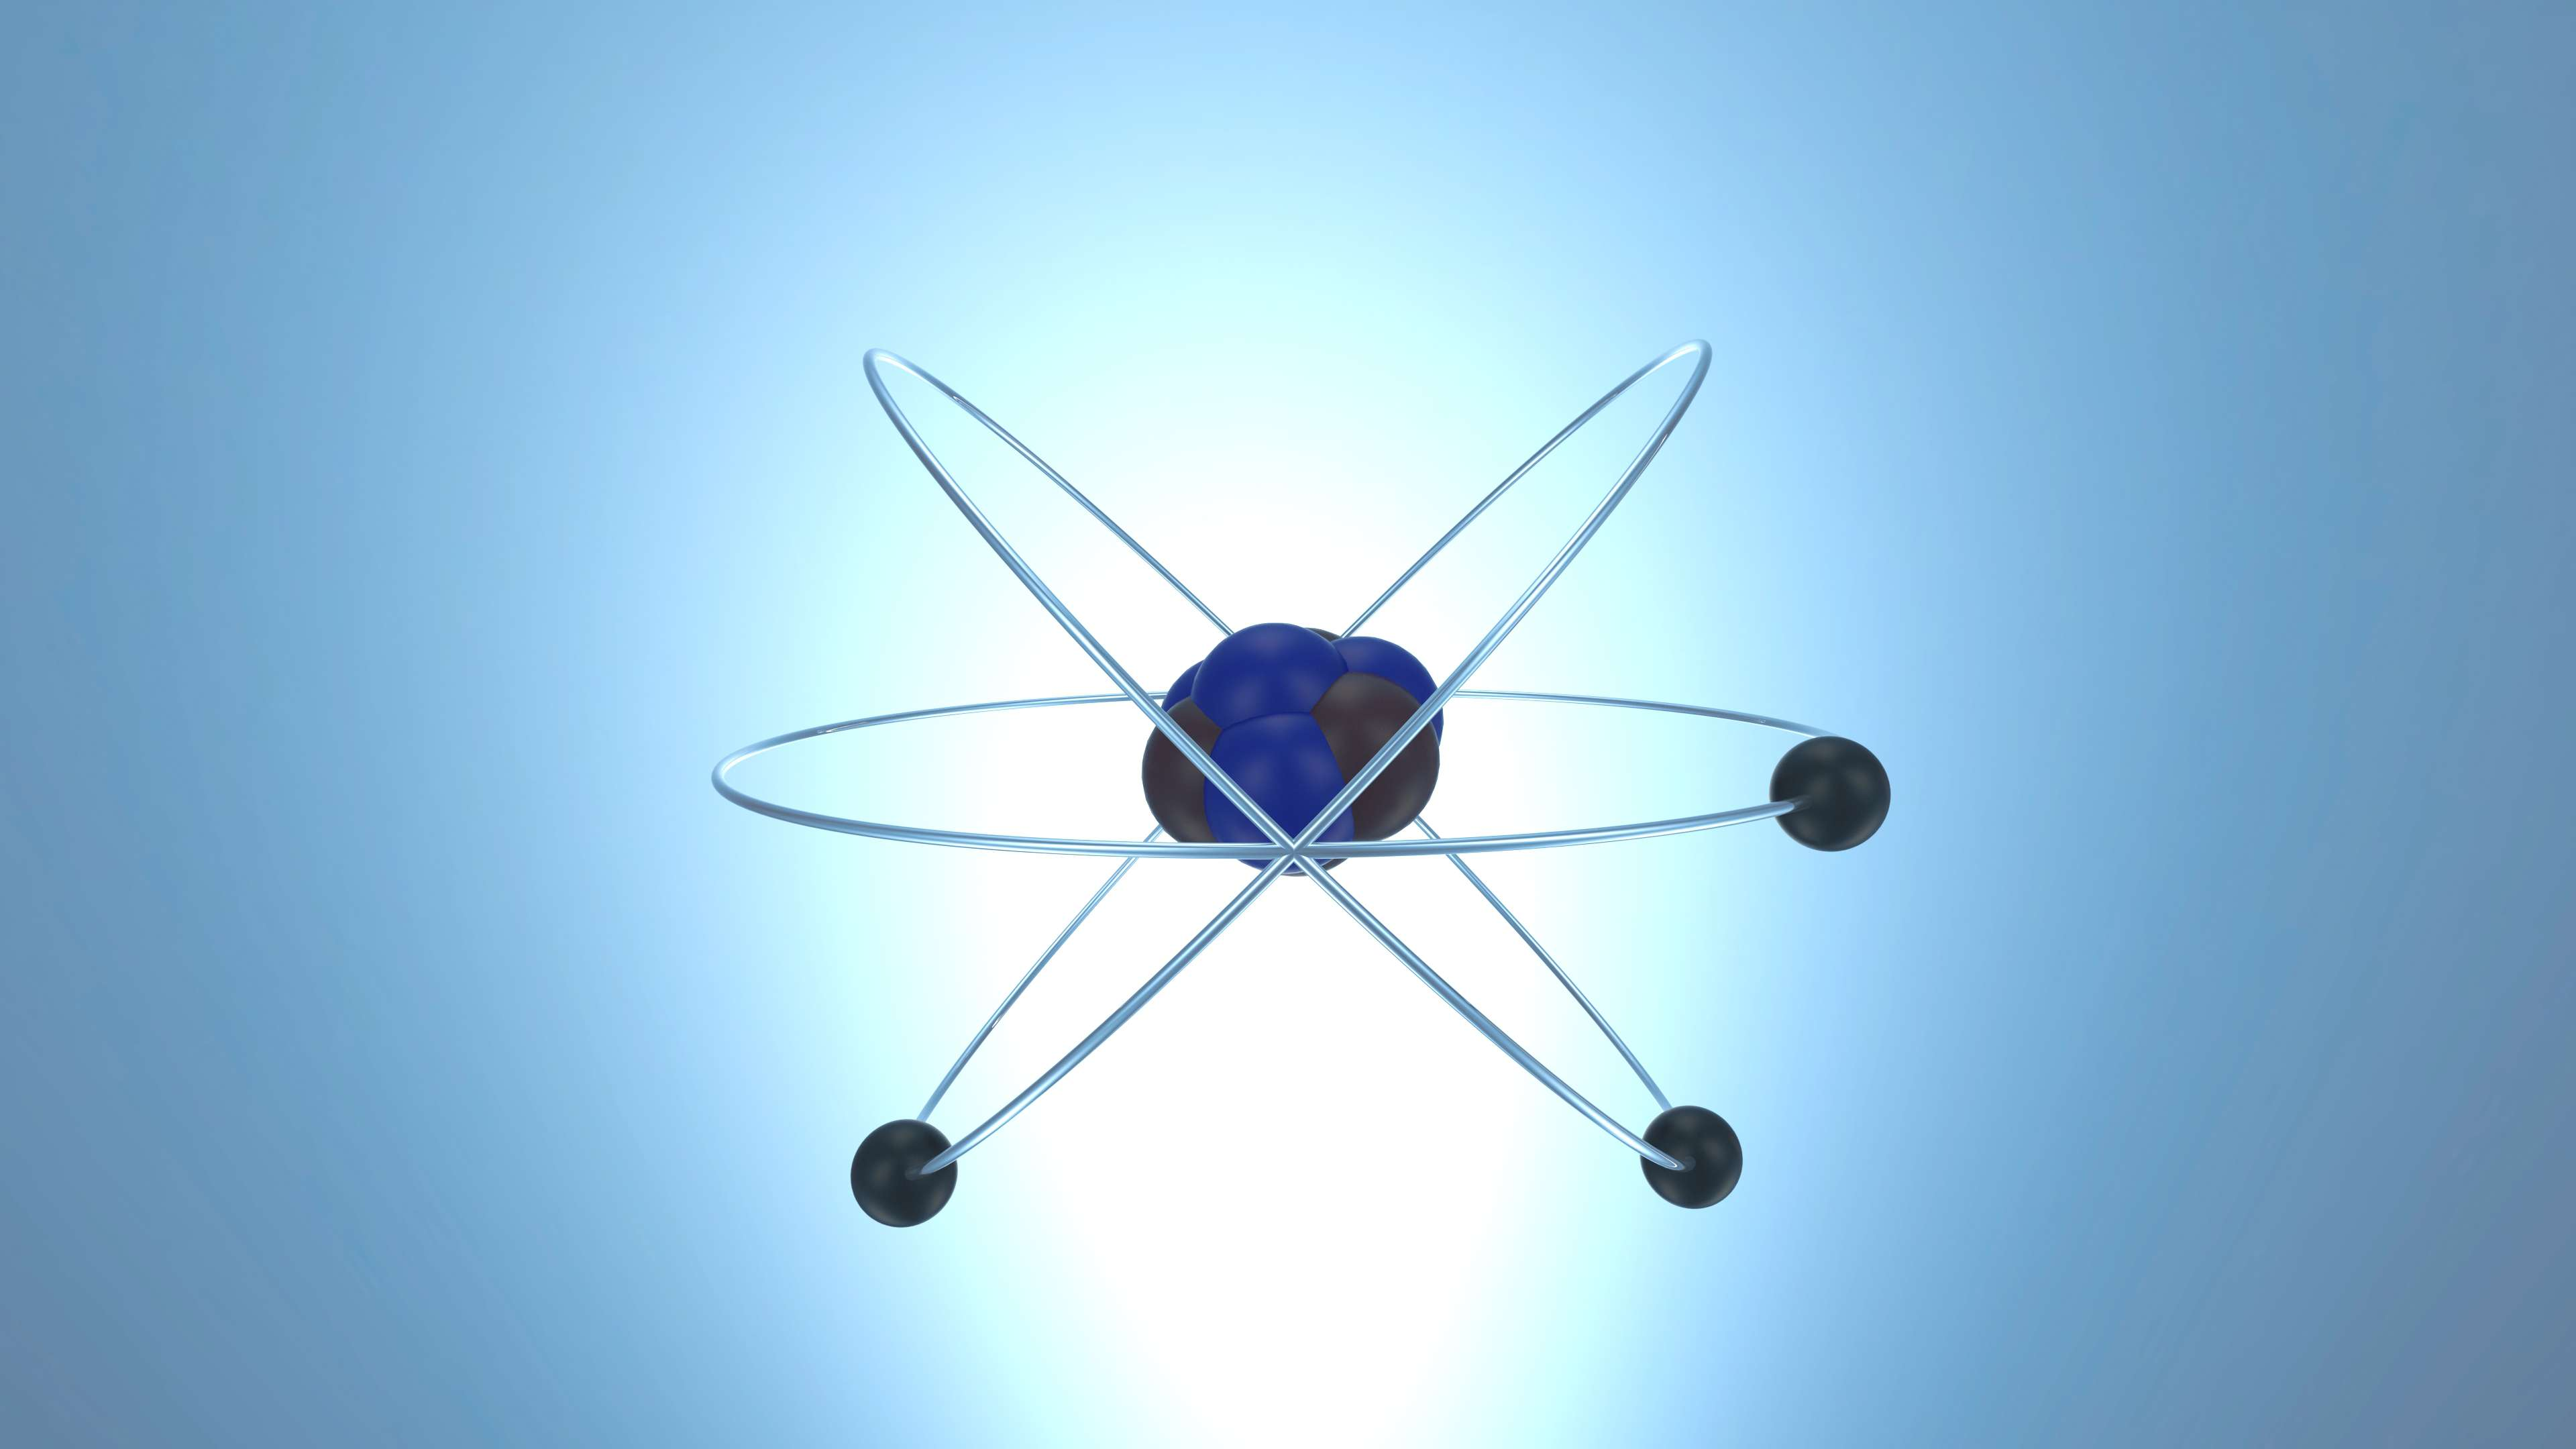 Electrons orbiting around neutrons and protons